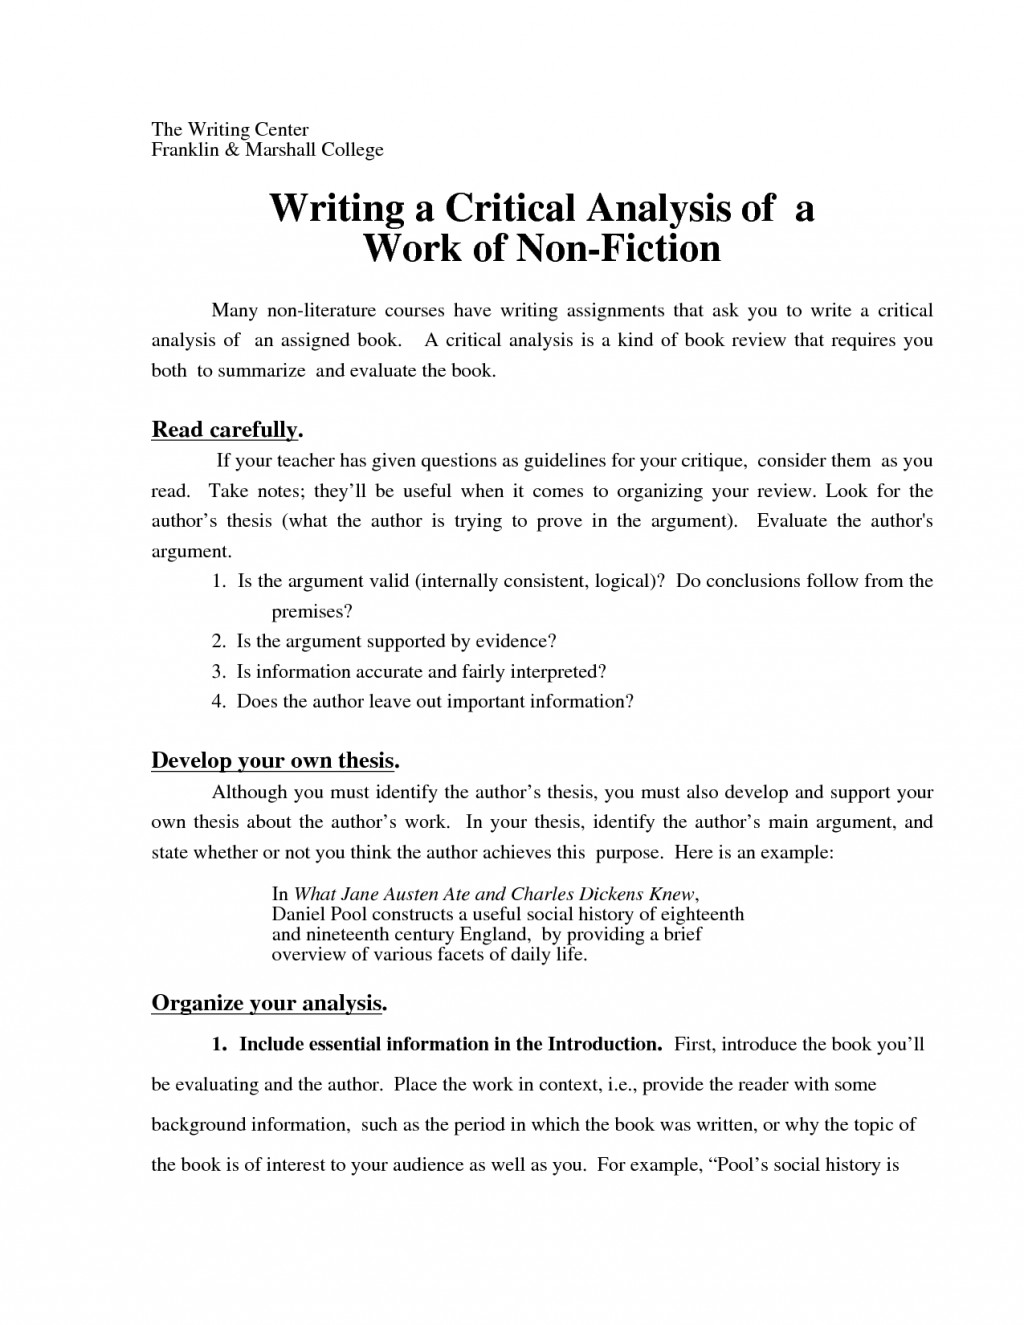 004 How To Begin Critical Essay Nurse Research Papers Vanderbilt Reliable Writing Service Uk Write Quotes From Book In An Analysis Paper Examples 1 Series Title Mla Name Apa Amazing A Review Structure Response Large